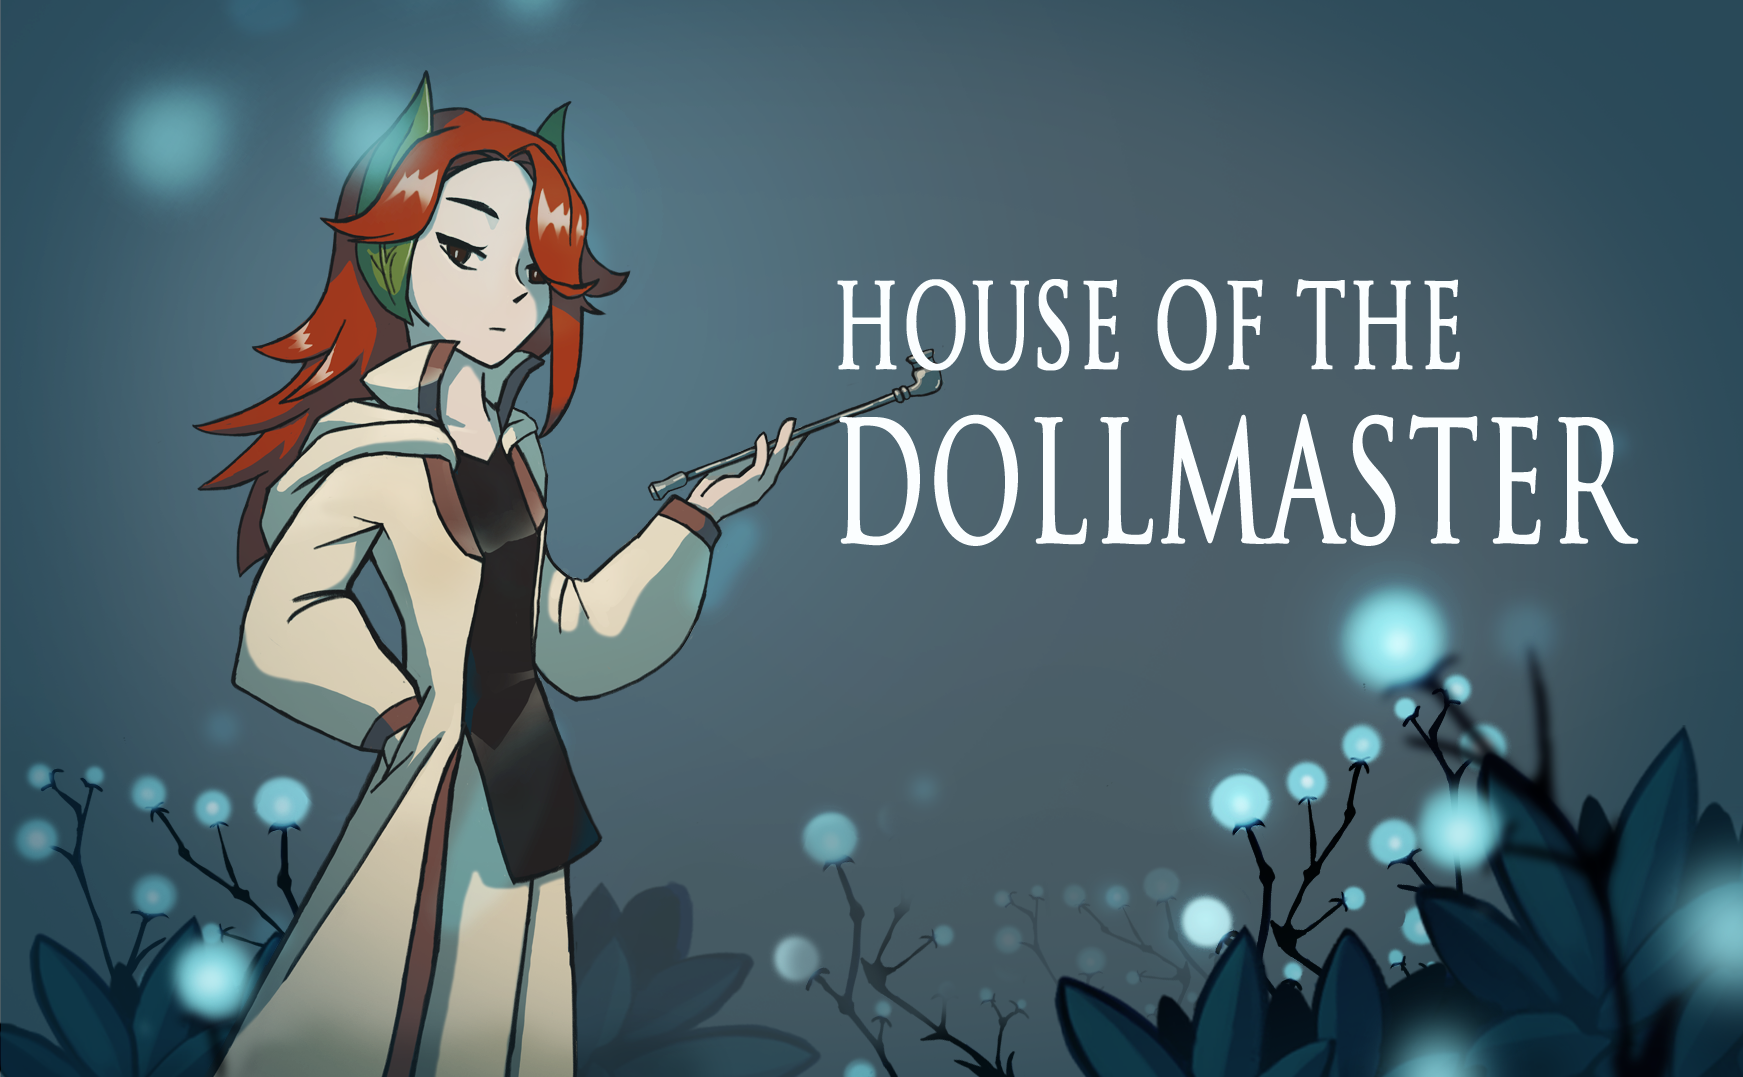 House of the Doll Master